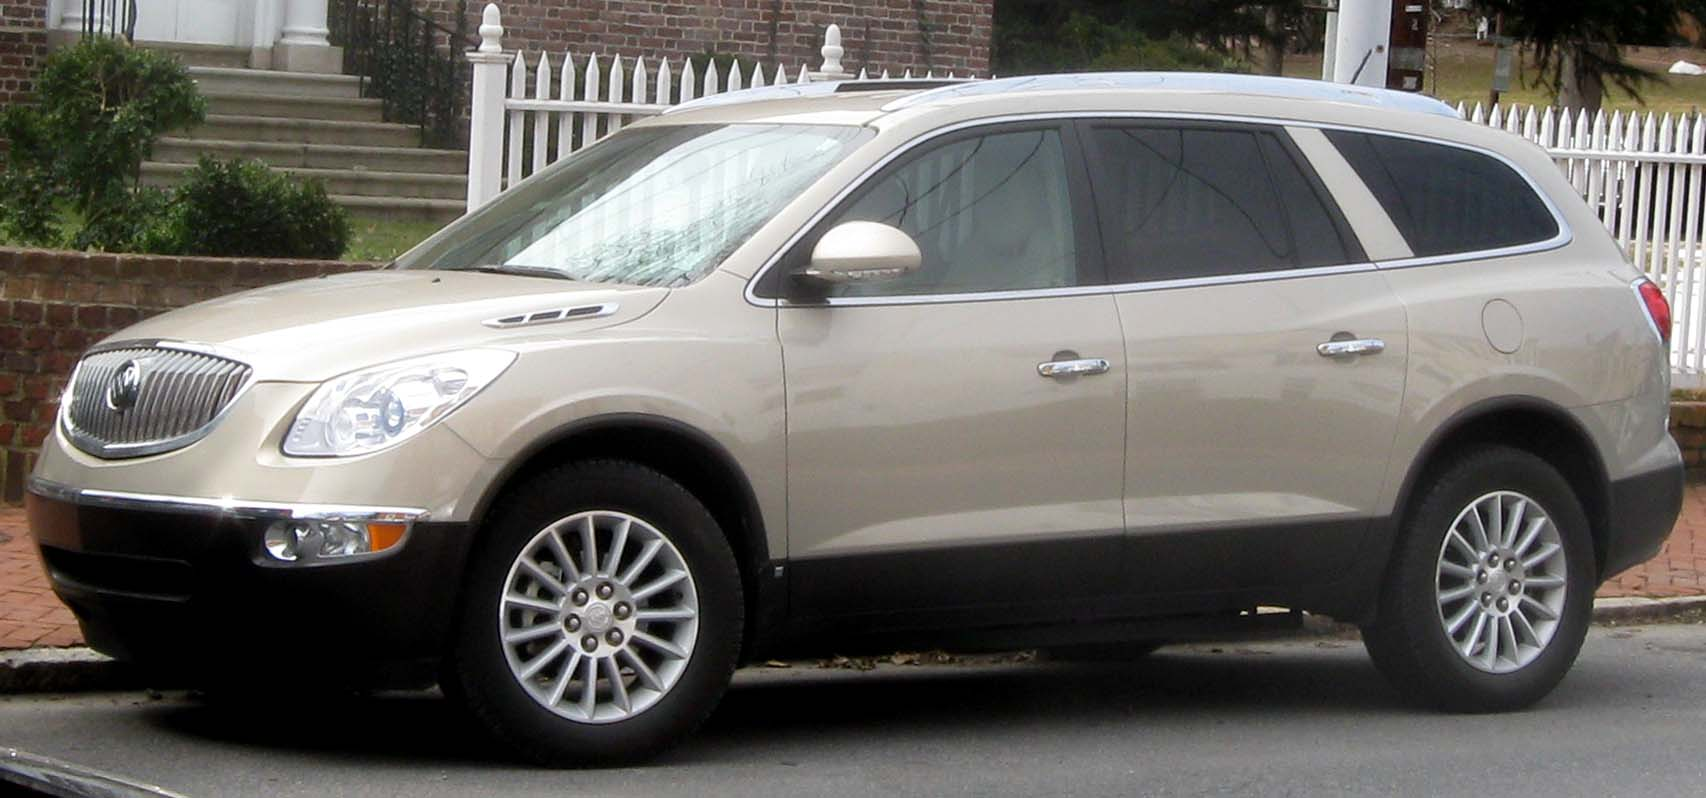 Pictures of buick enclave #13